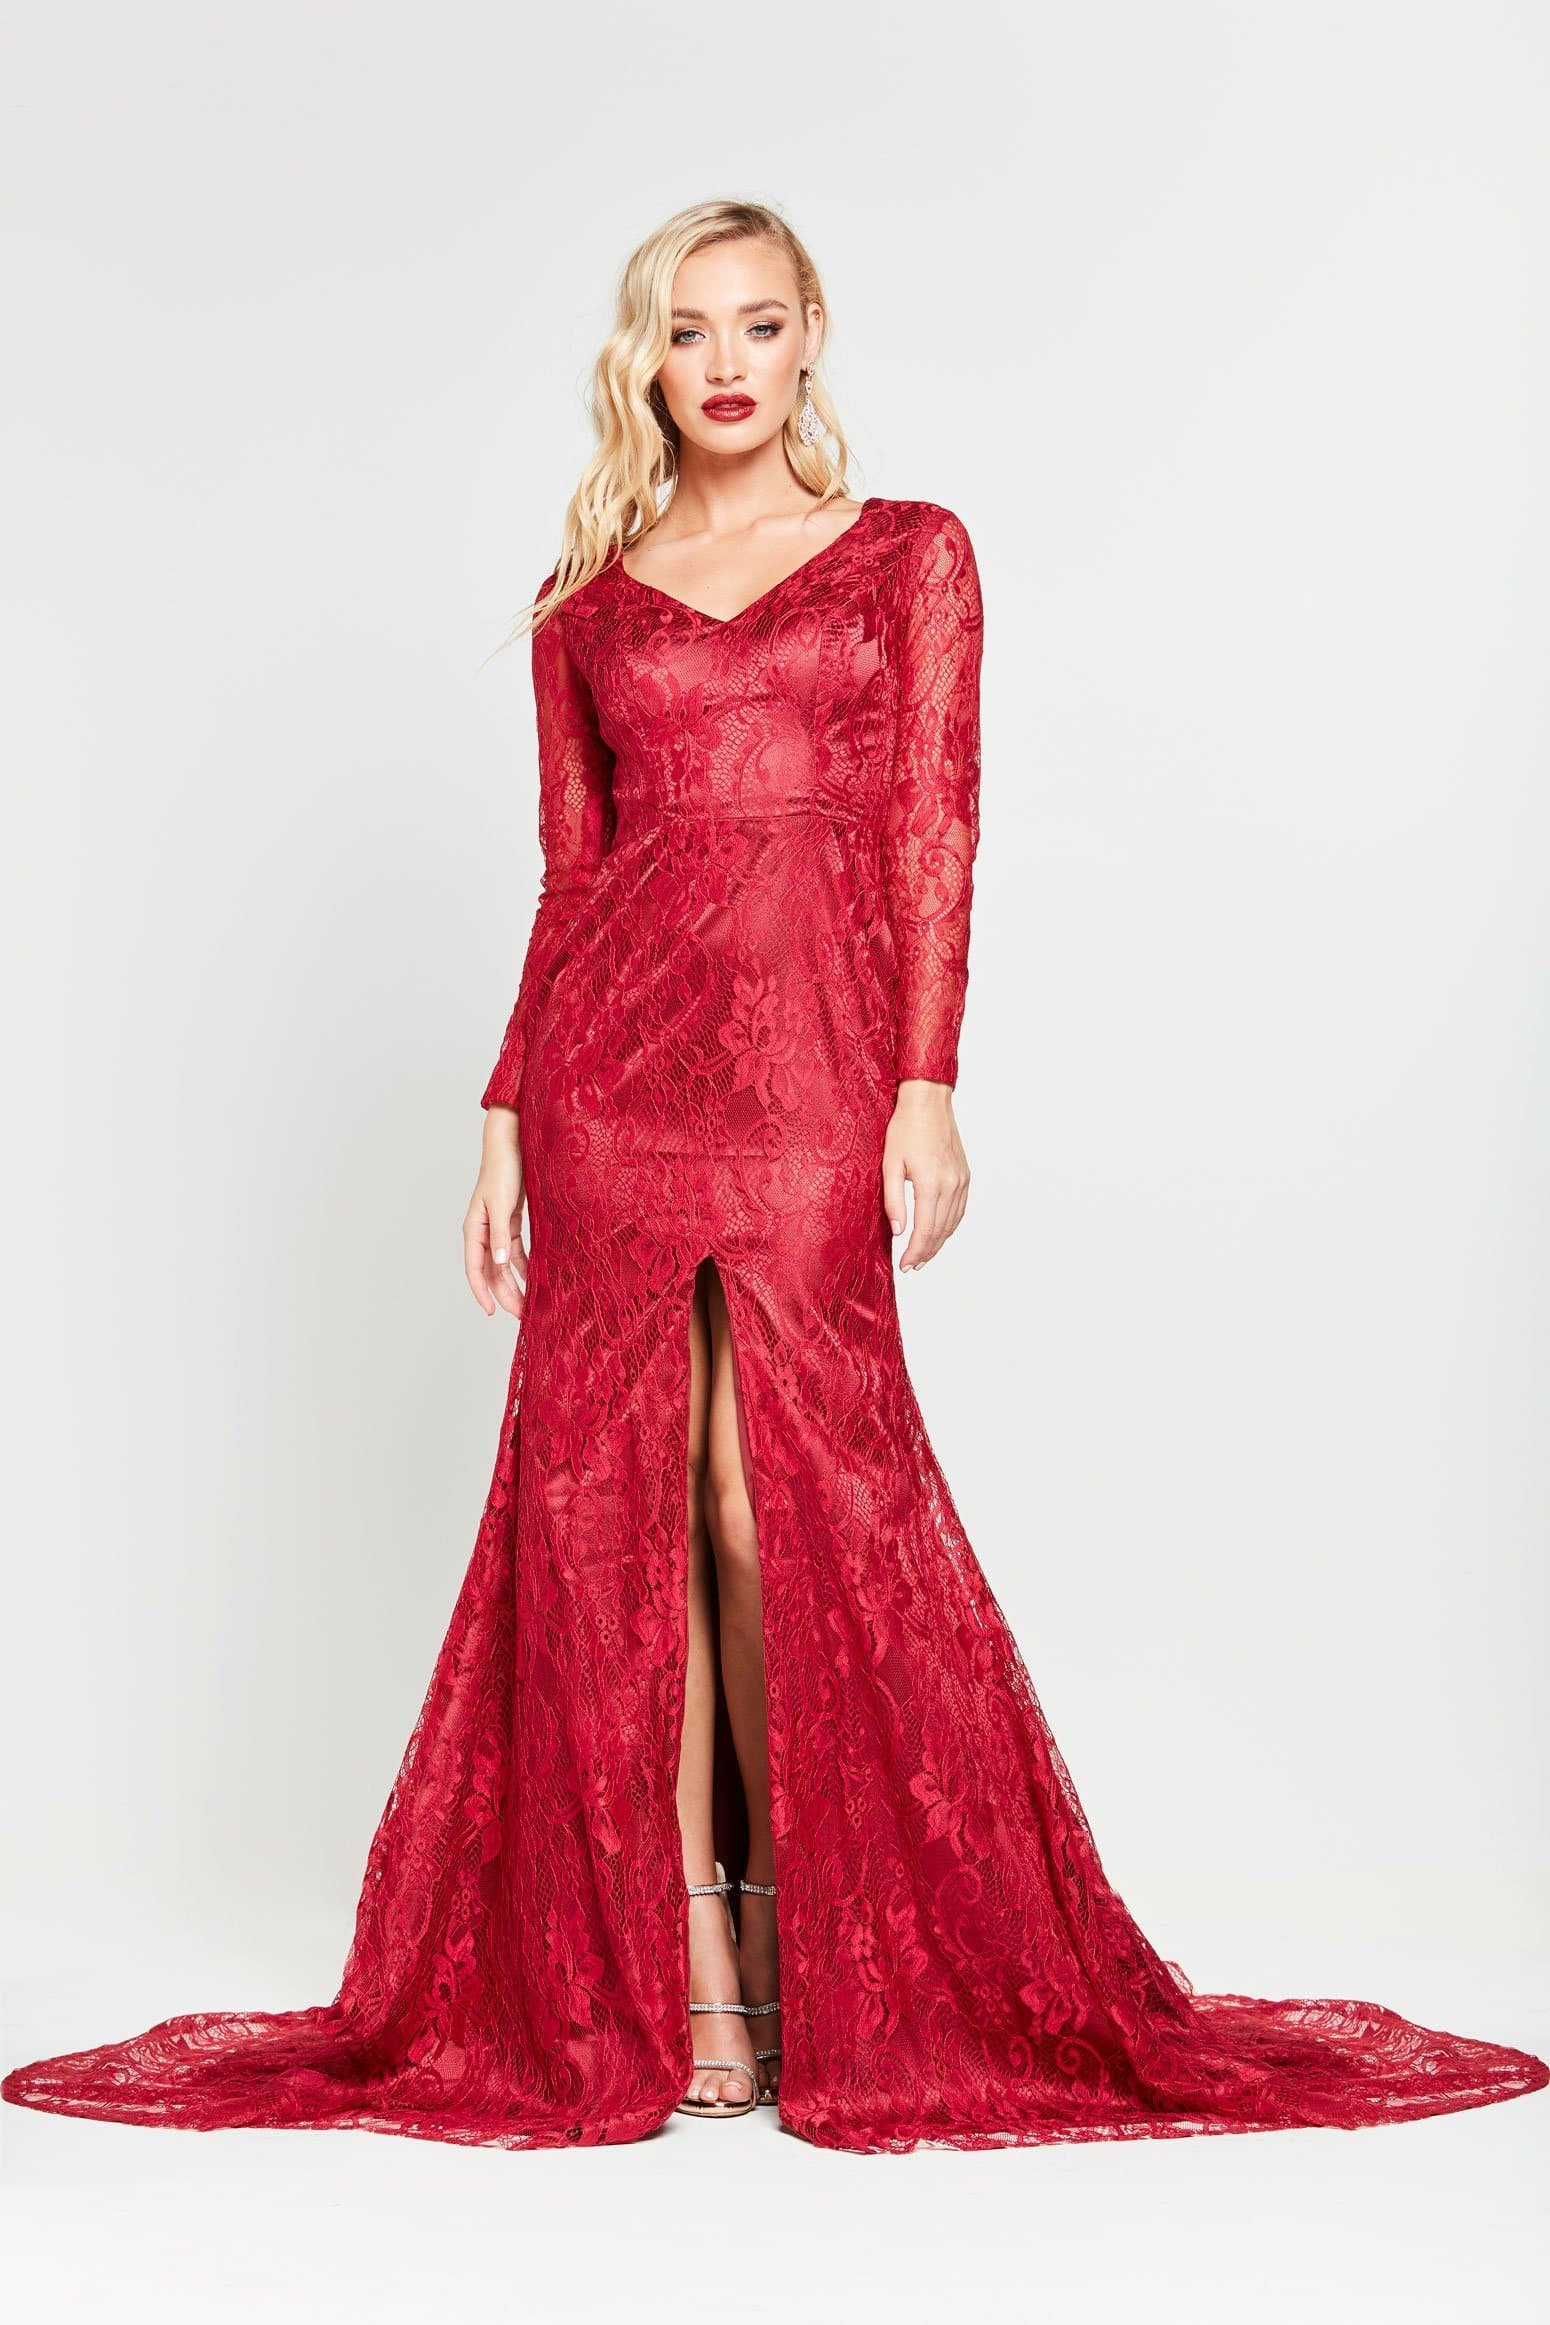 A&N Renee - Long Sleeve Red Lace Formal Gown with Mermaid Train